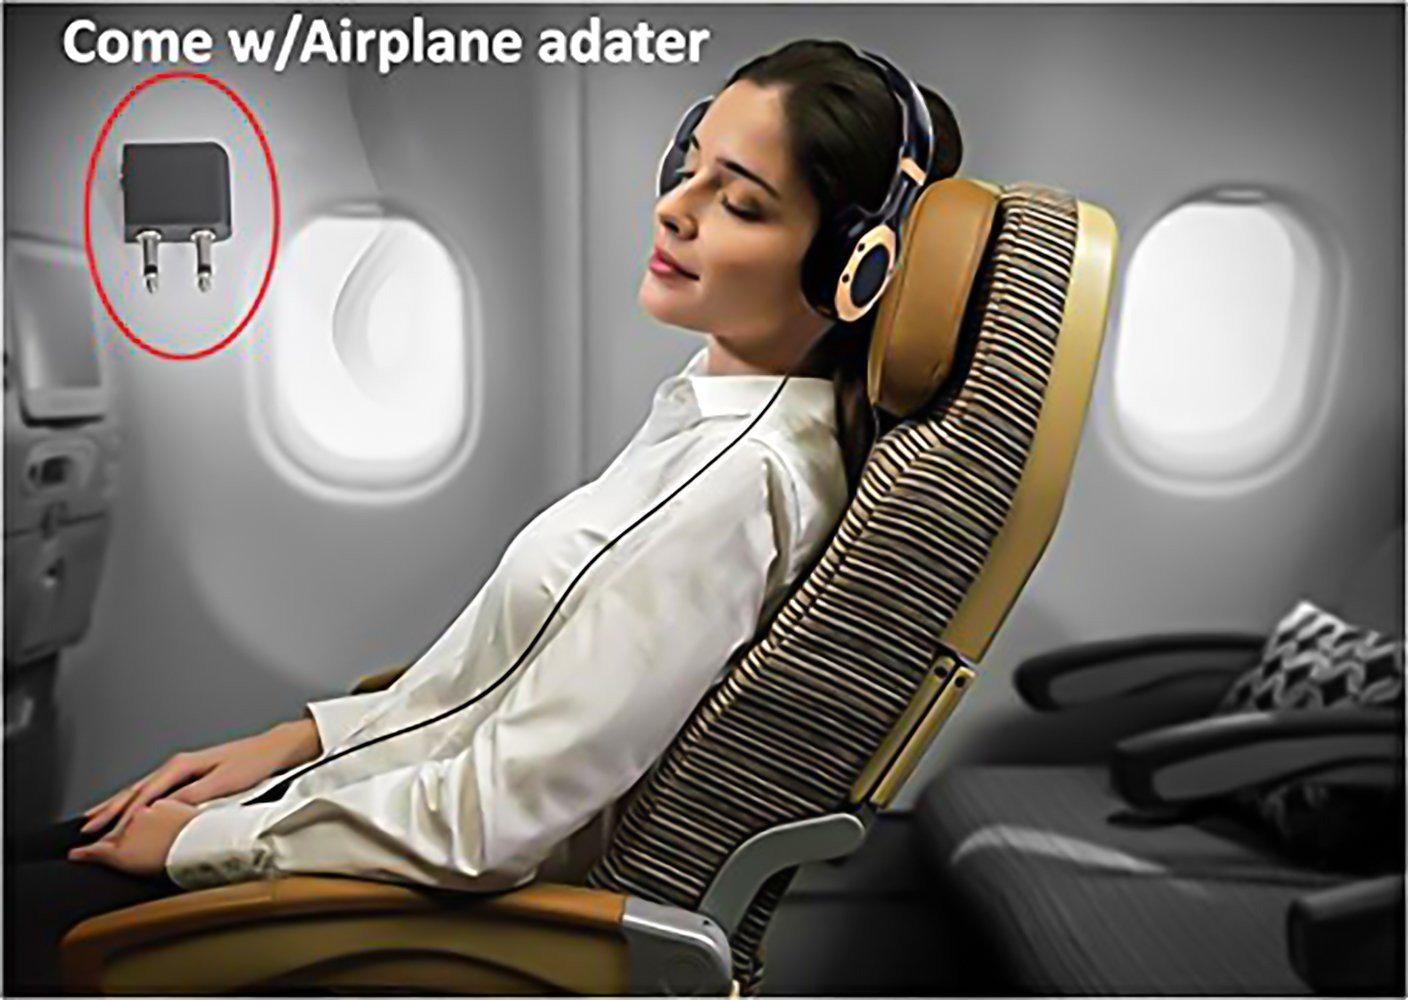 Active Noise Cancelling Headphones with Microphone and Airplane Adapter, Alteng J19 Folding and Lightweight Travel Headsets, Hi-Fi Deep Bass Wired Headphones with Carrying Case - Black by ALTENG (Image #4)